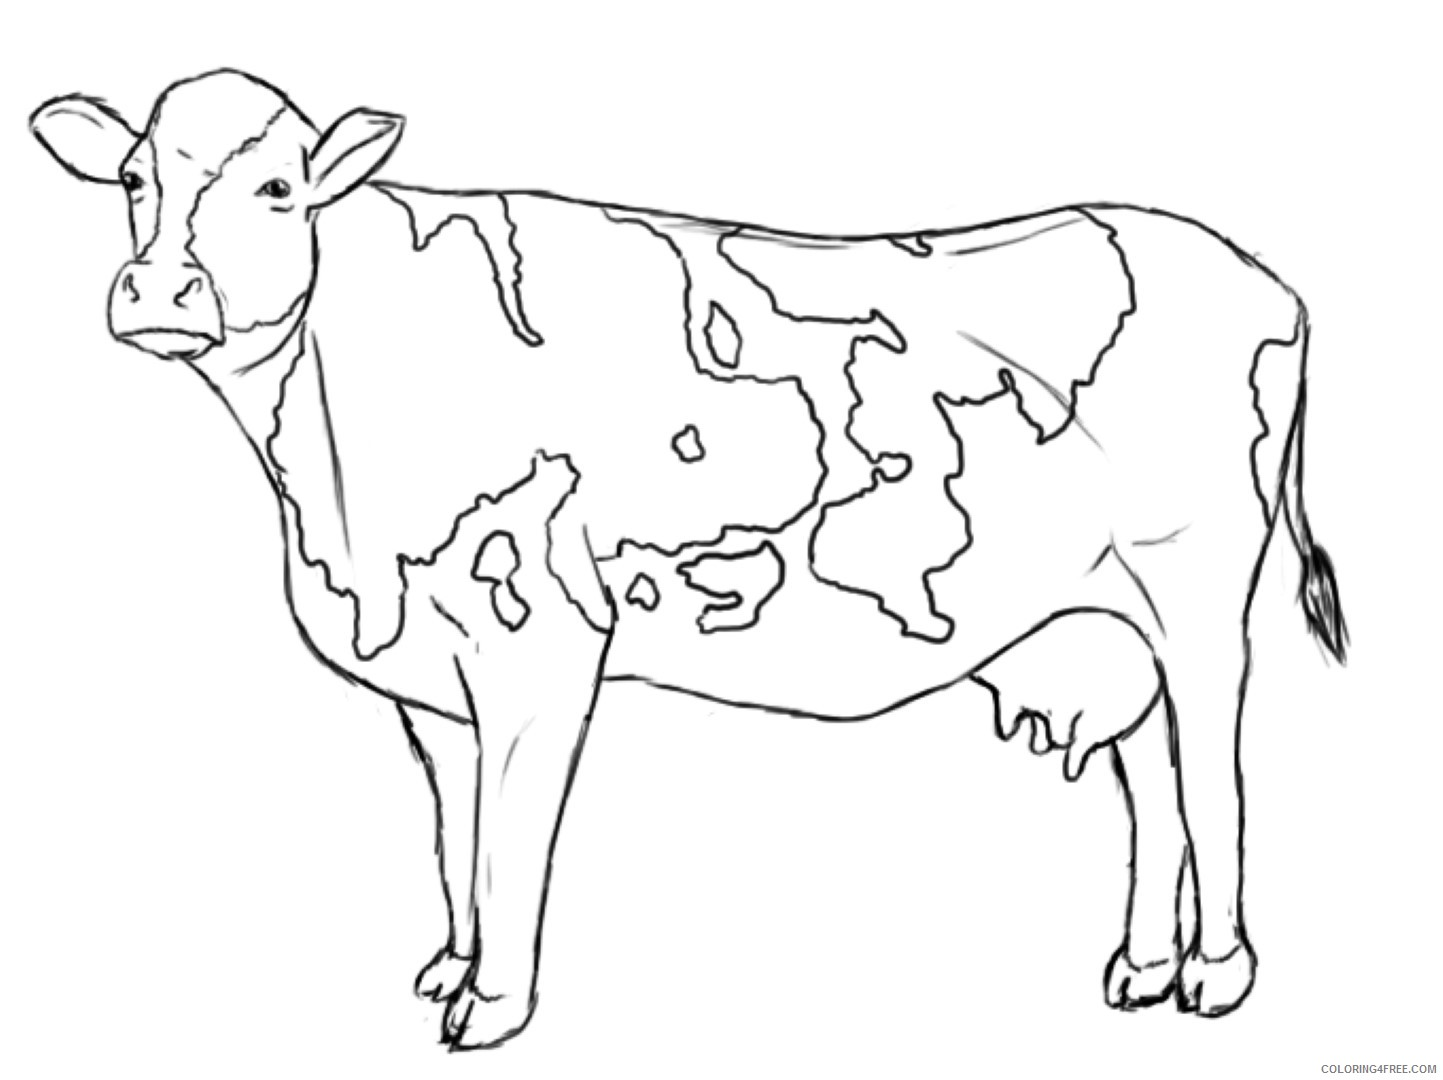 Cow Coloring Pages Printable Coloring4free Coloring4free Com